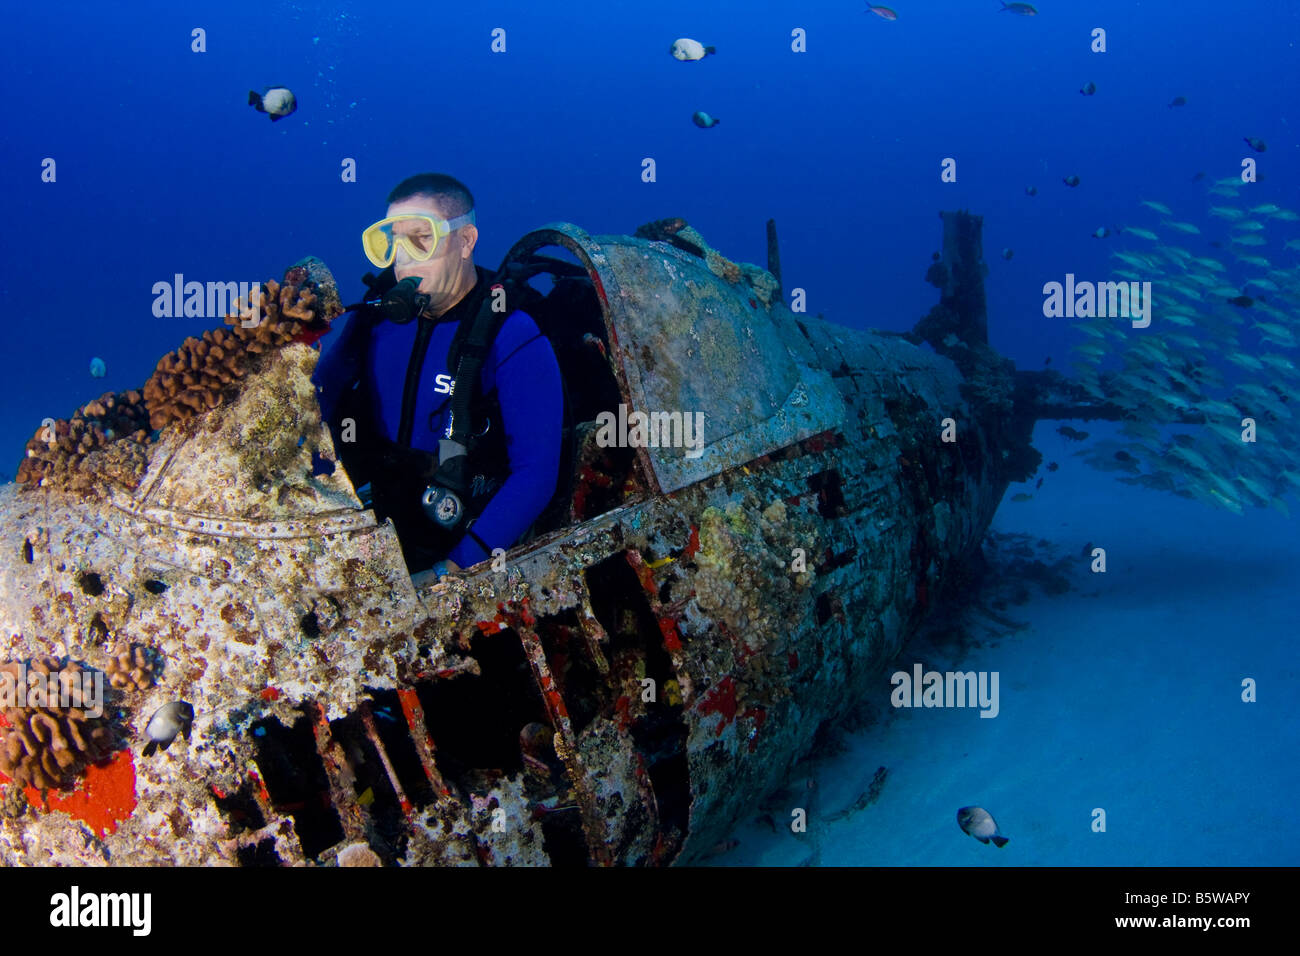 Diver in the cockpit of a WW II Corsair fighter plane off South East Oahu, Hawaii. - Stock Image